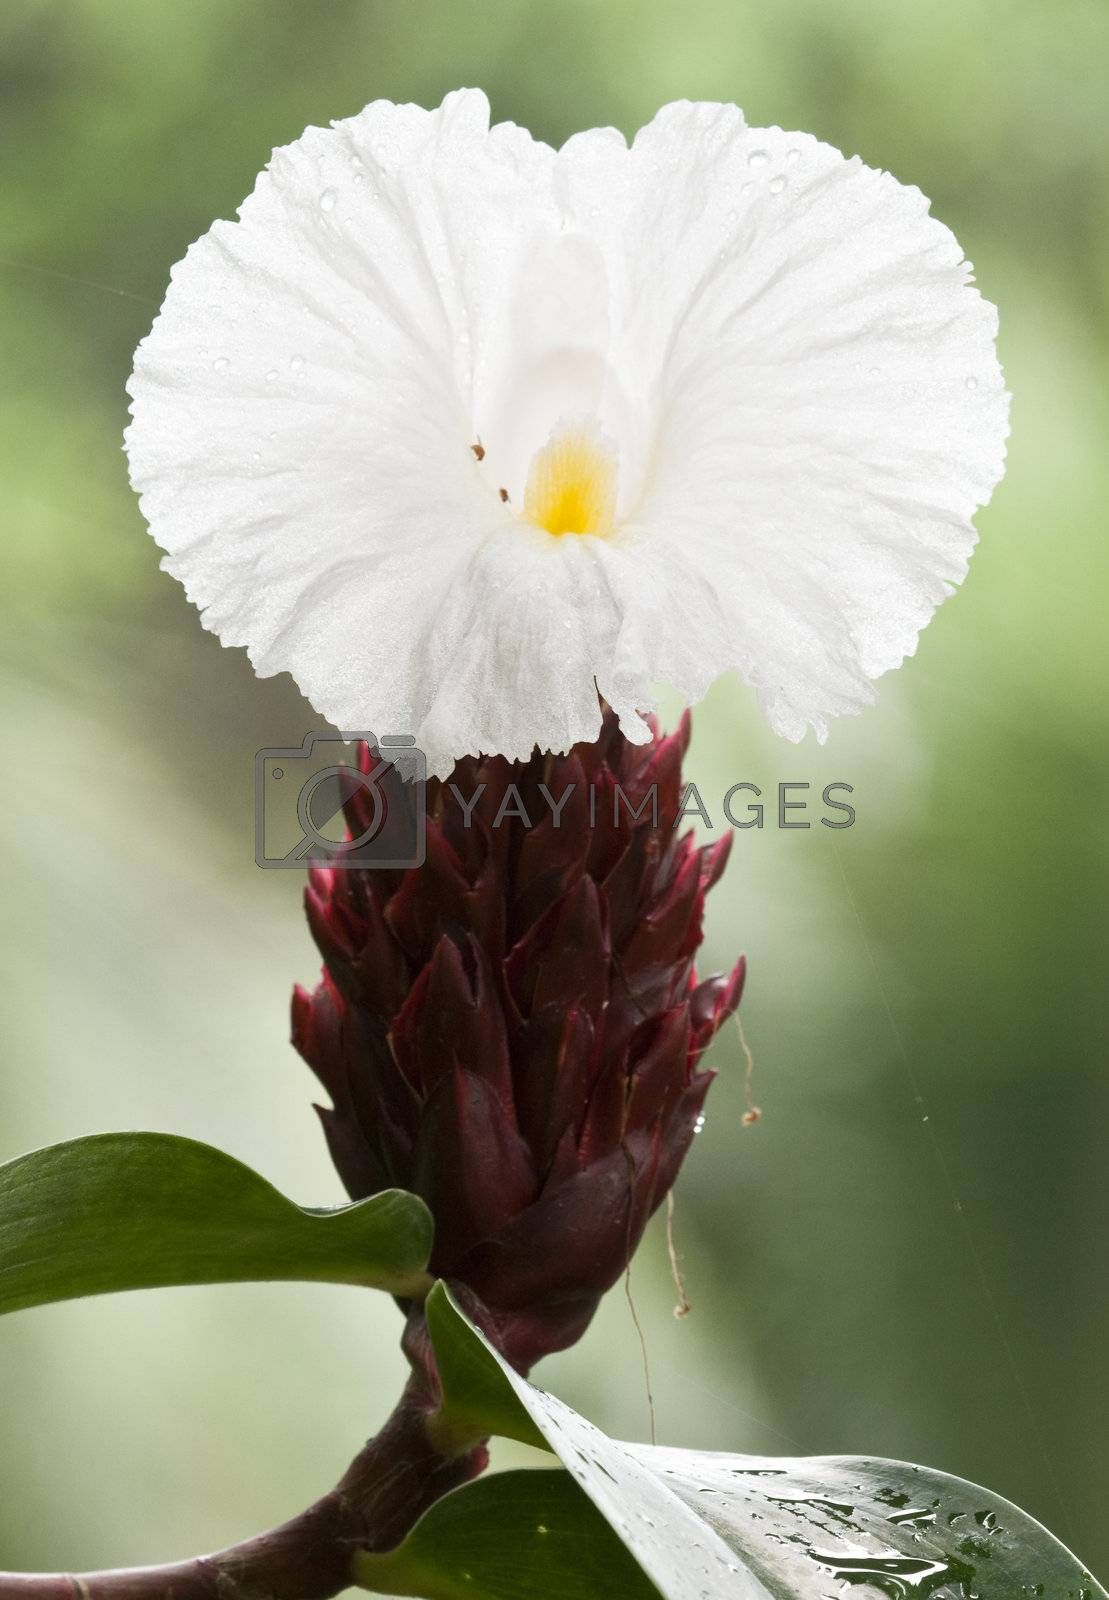 Royalty free image of White and brown tropical flower by AlessandroZocc